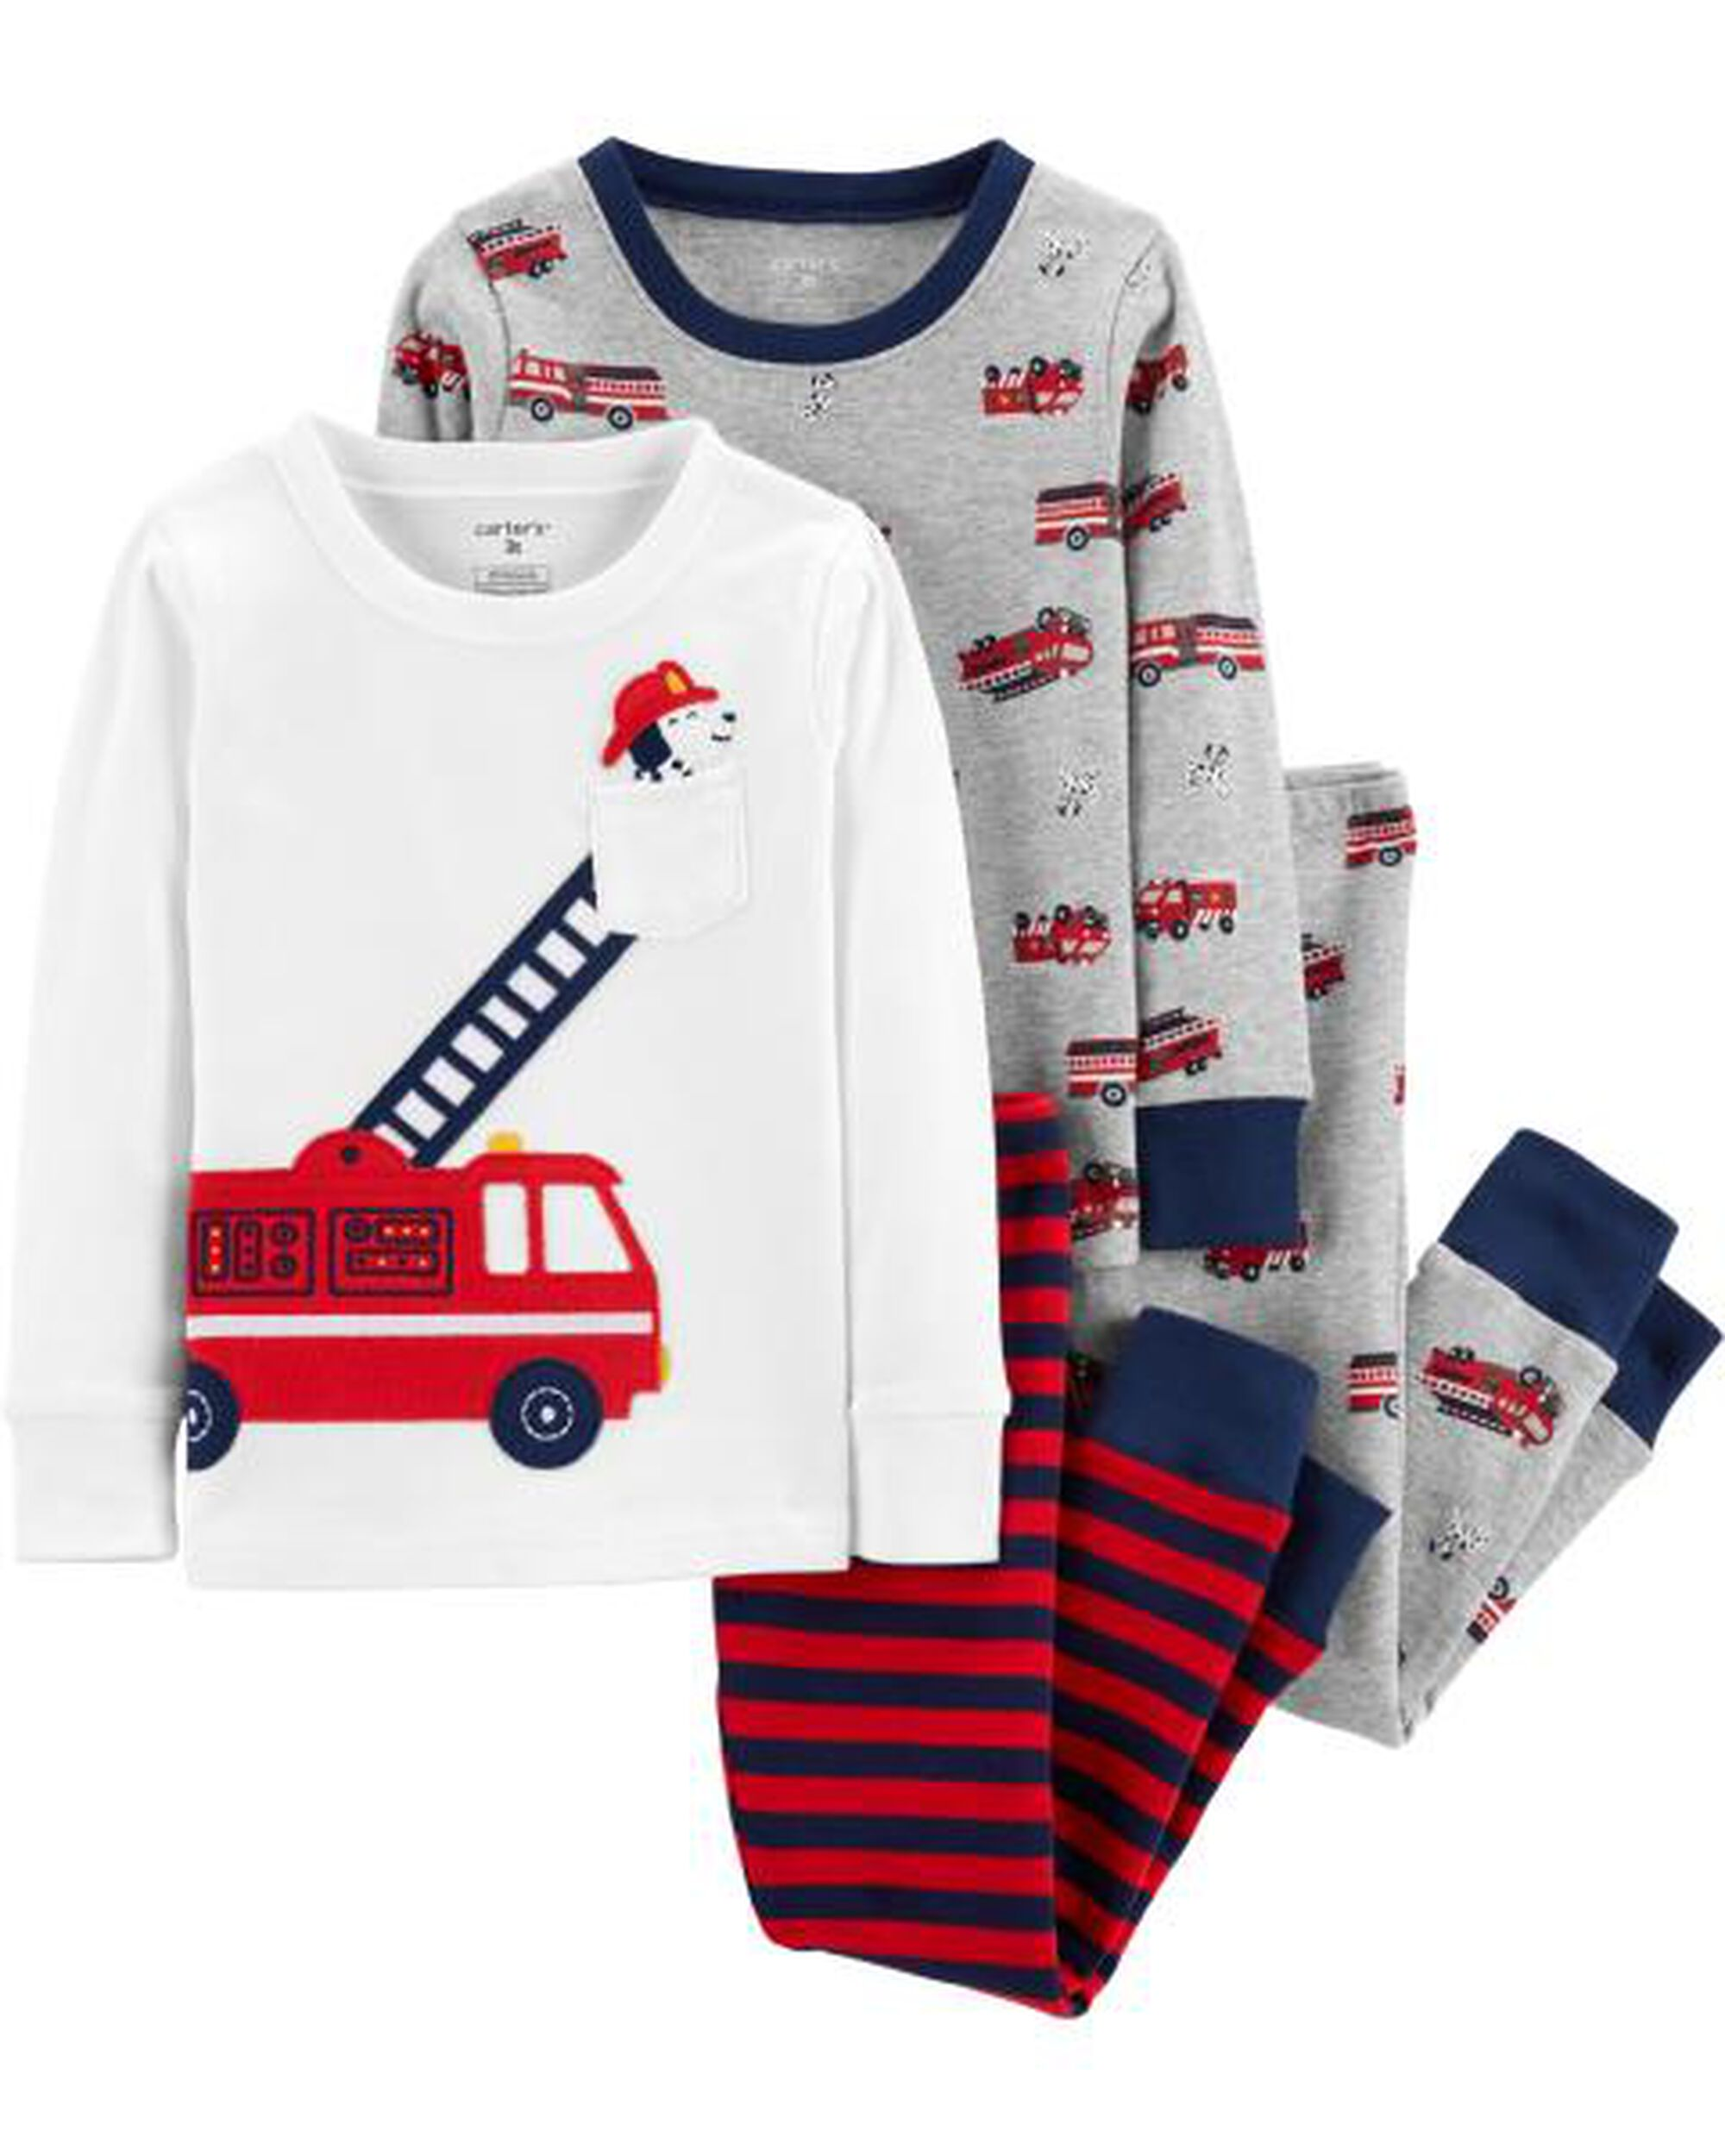 0e3c6cb28 4-Piece Firetruck Snug Fit Cotton PJs